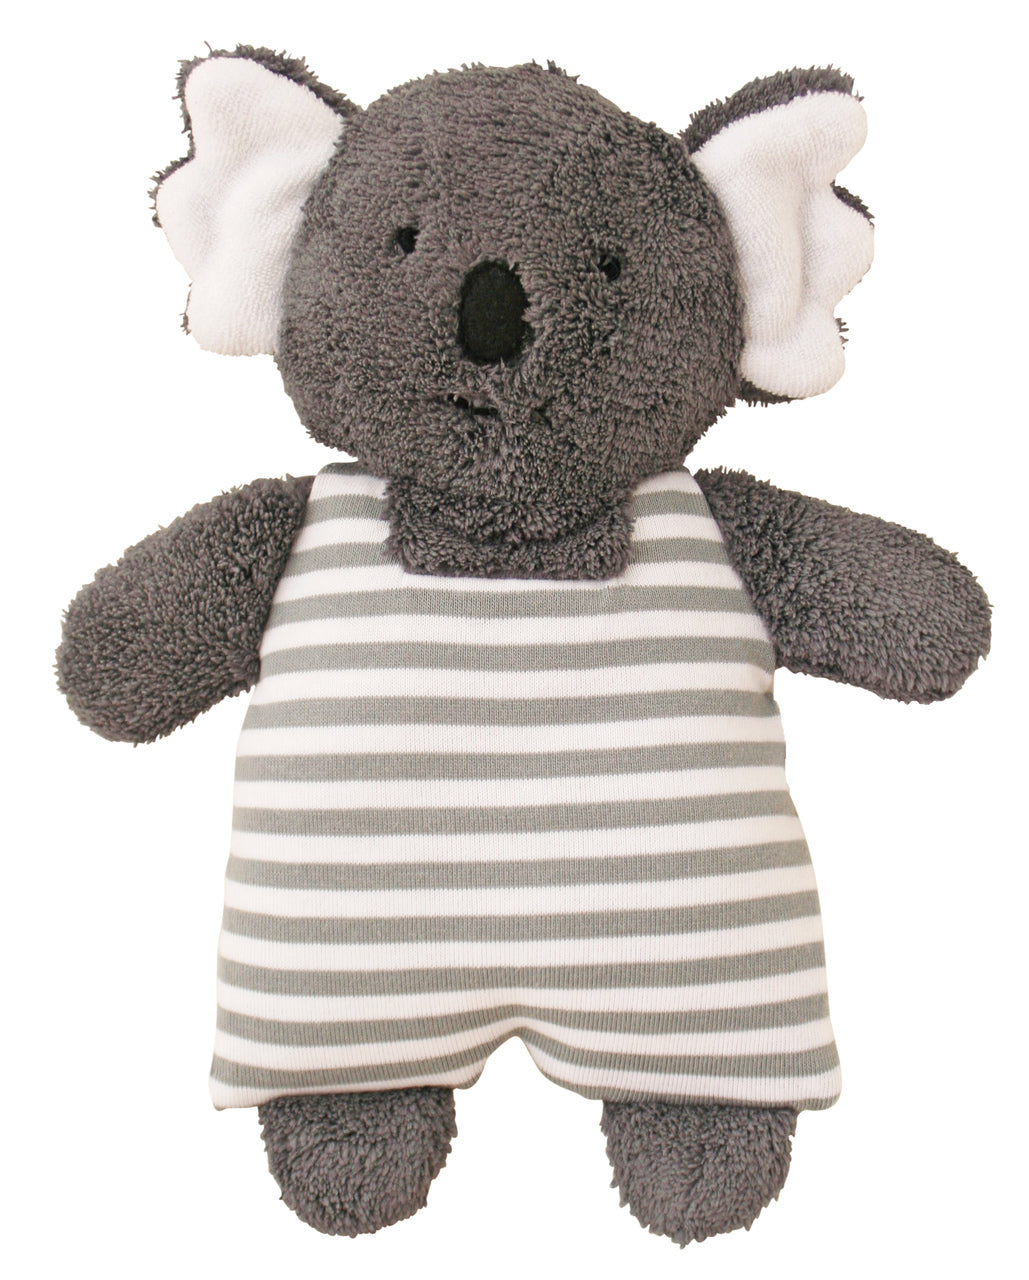 Koala Toy Rattle in grey stripe by Alimrose